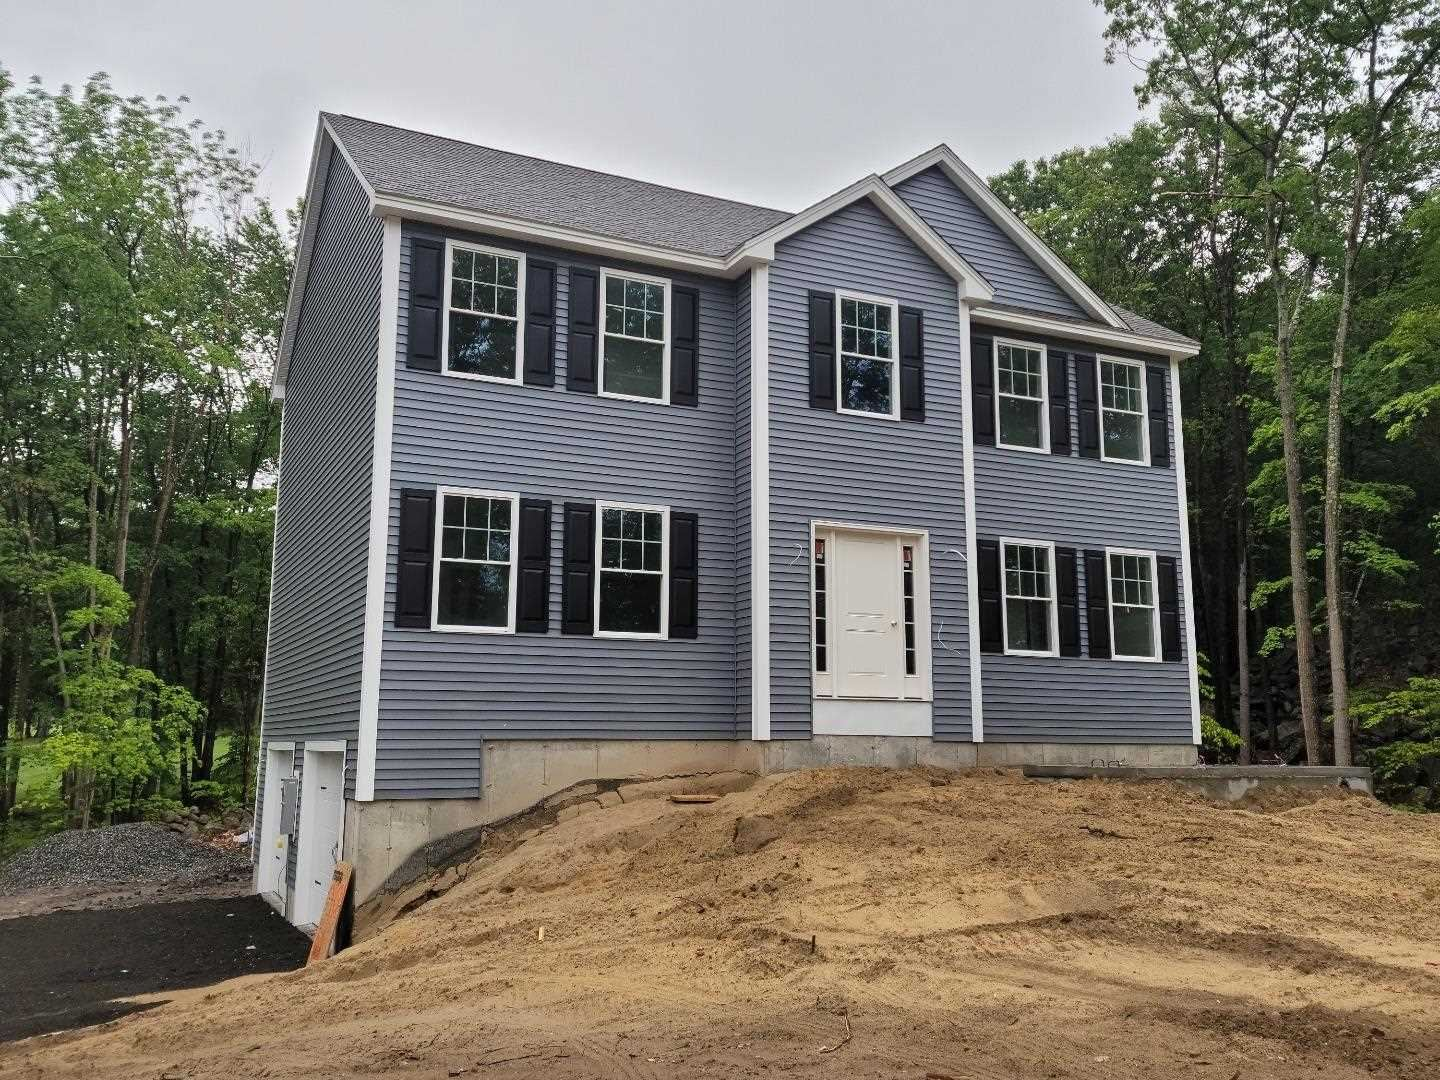 29 Old Manchester Road, Candia, NH 03034 - MLS#: 4852976